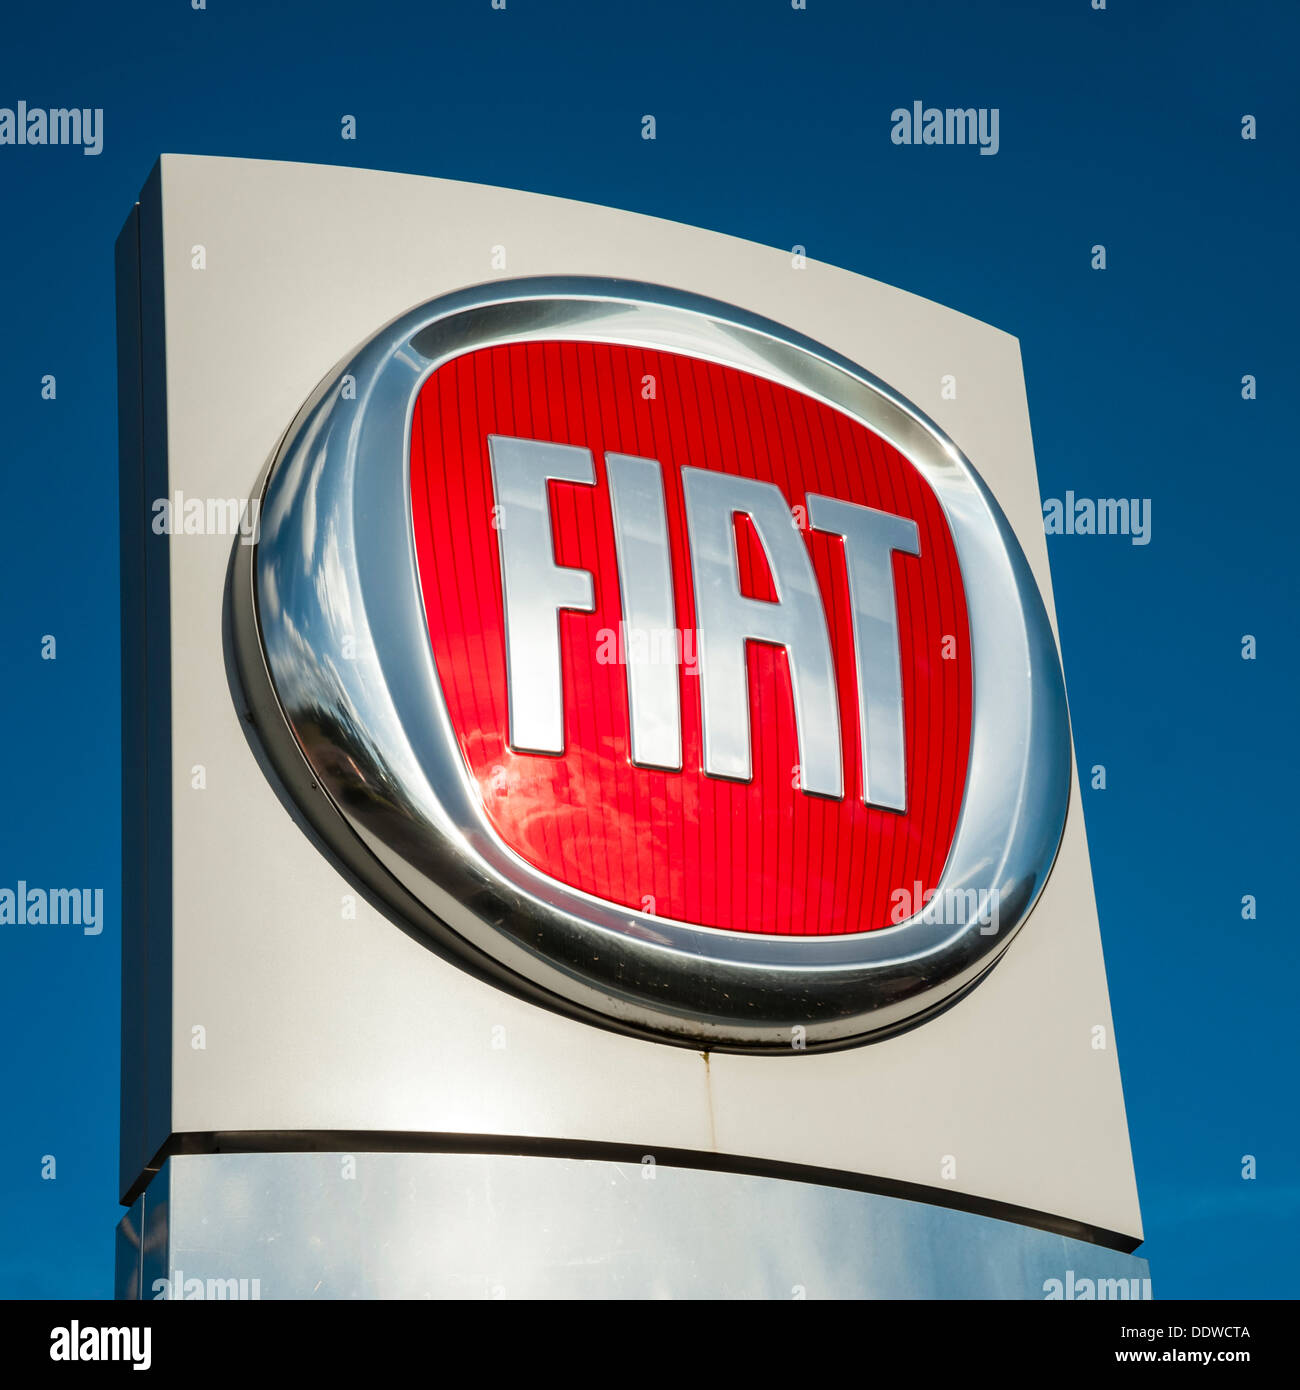 Fiat logo on a car dealership sign in the UK. - Stock Image